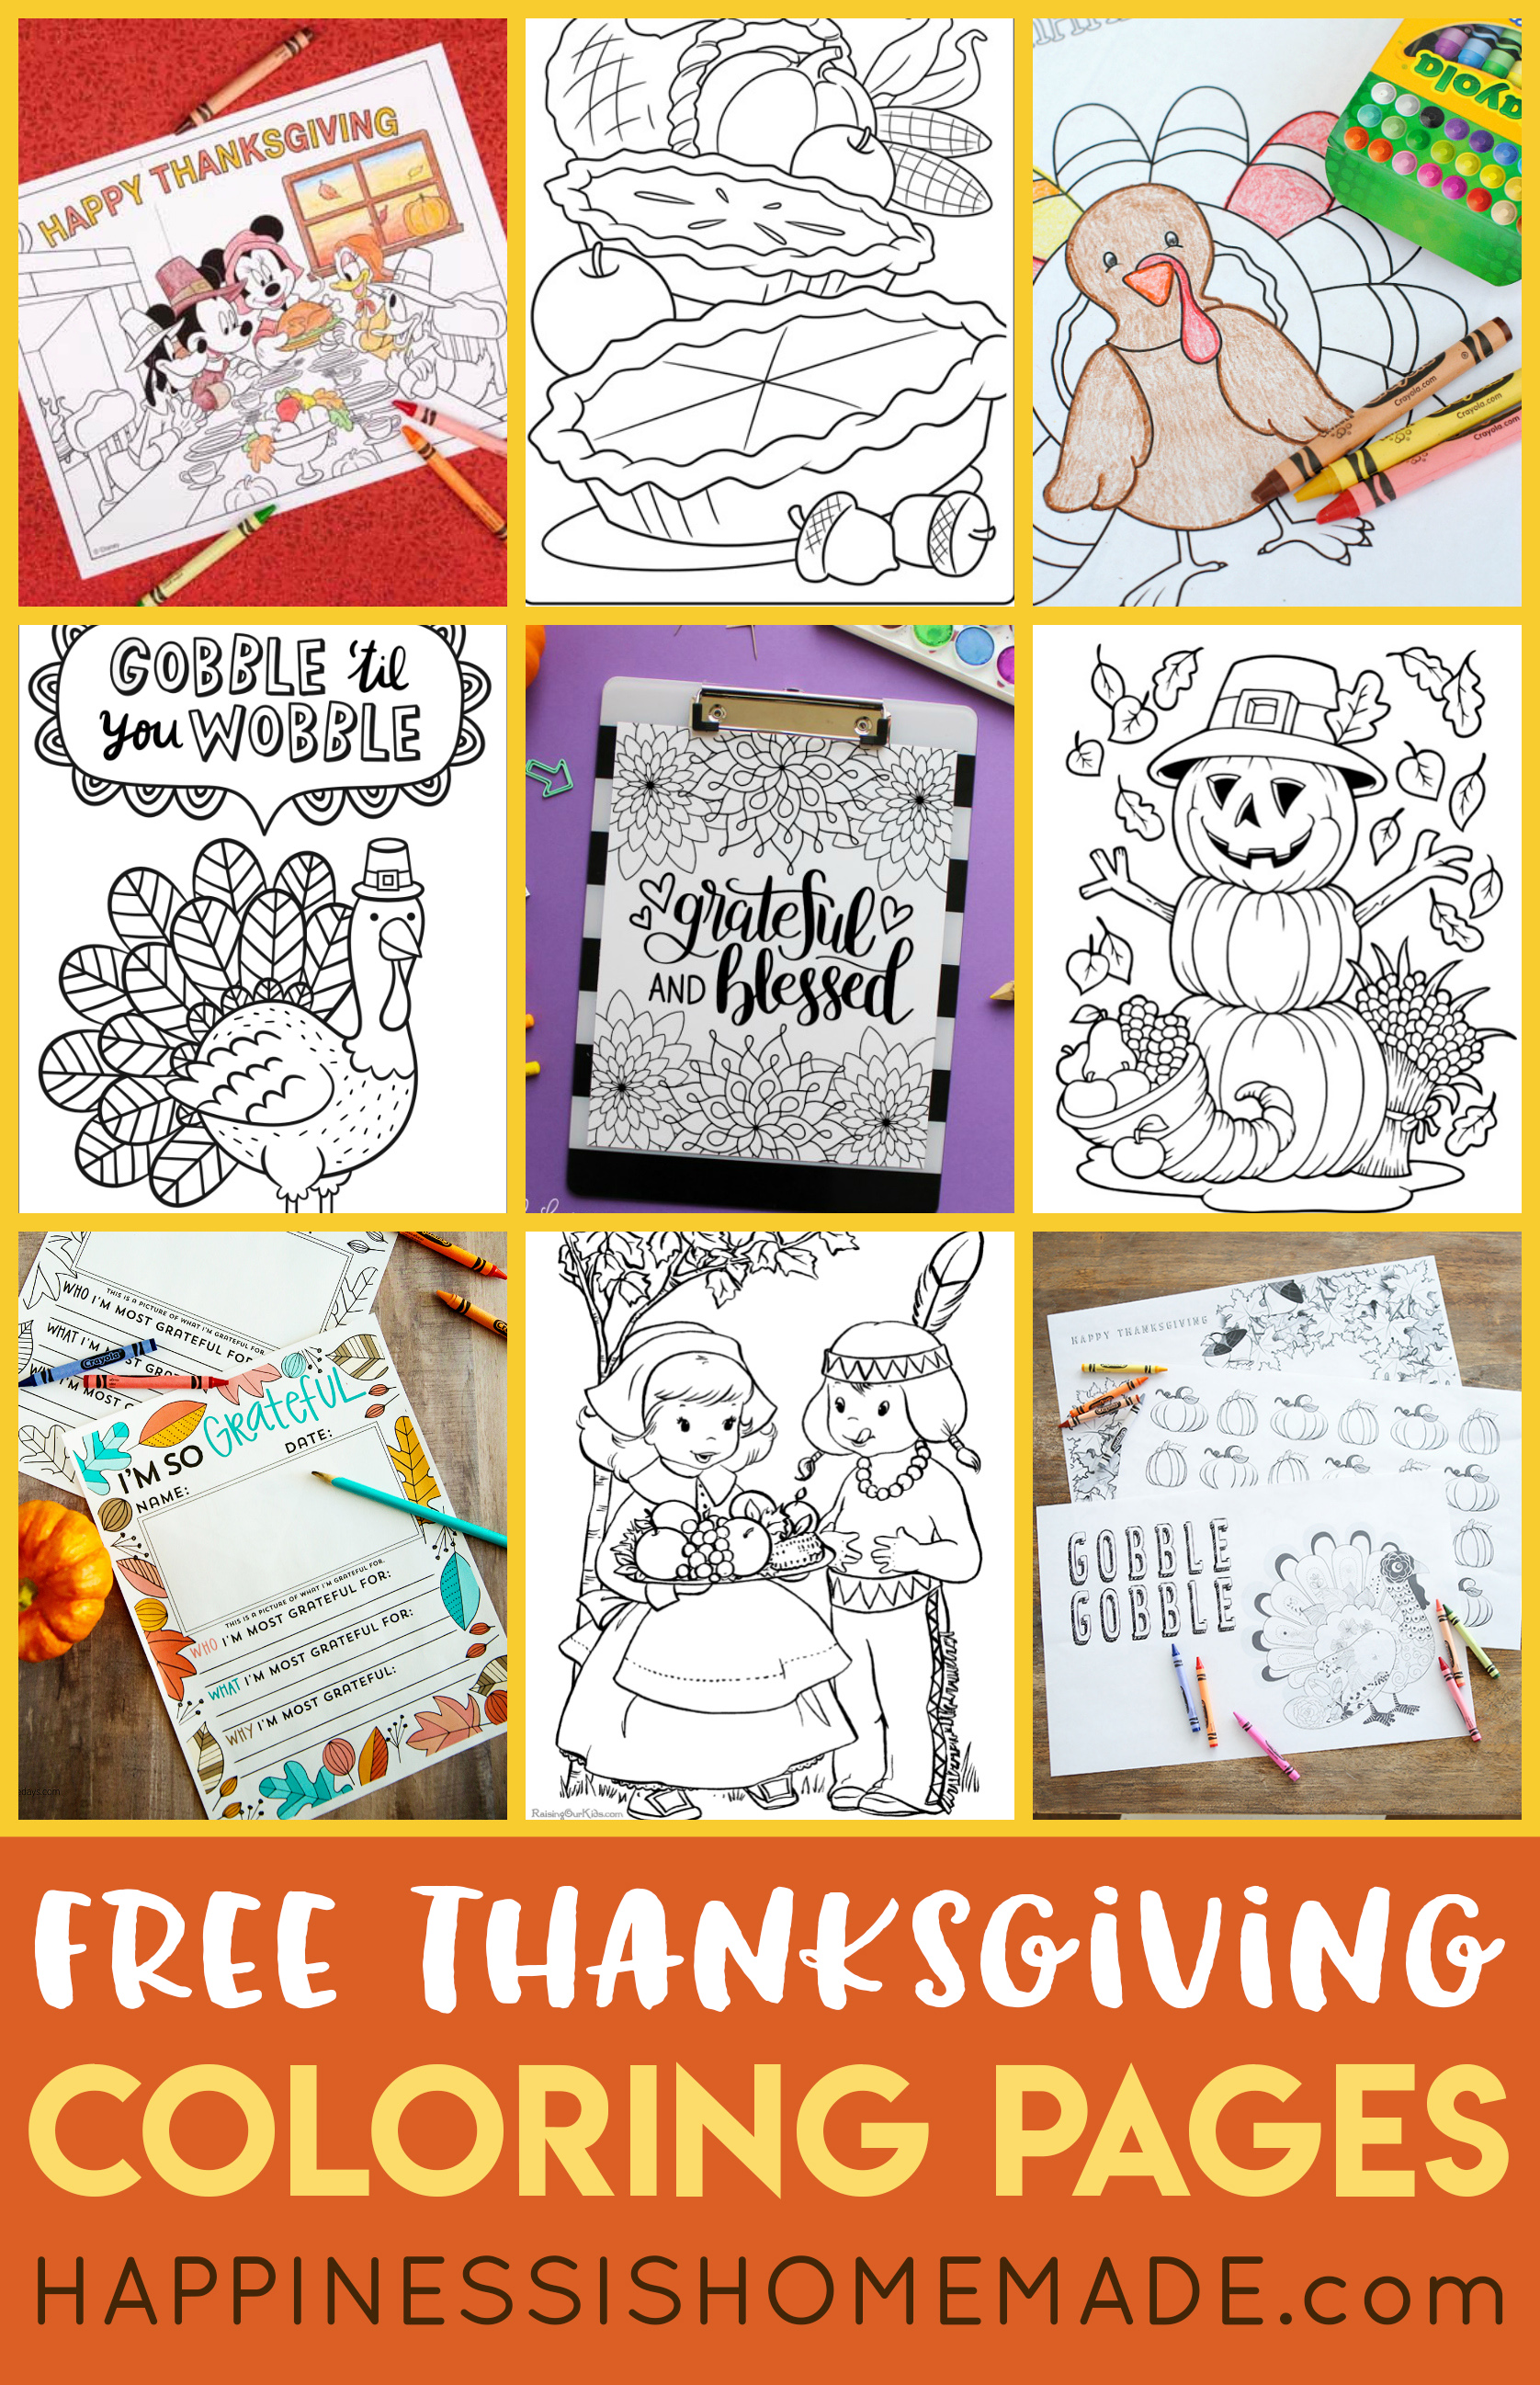 20+ FREE Printable Thanksgiving Coloring Pages for Adults & Kids – there's something for every skill level here! Thanksgiving Mickey Mouse, Charlie Brown, turkeys, pumpkins, cornucopias, and more! These printable Thanksgiving coloring sheets are sure to be a huge hit with all ages!